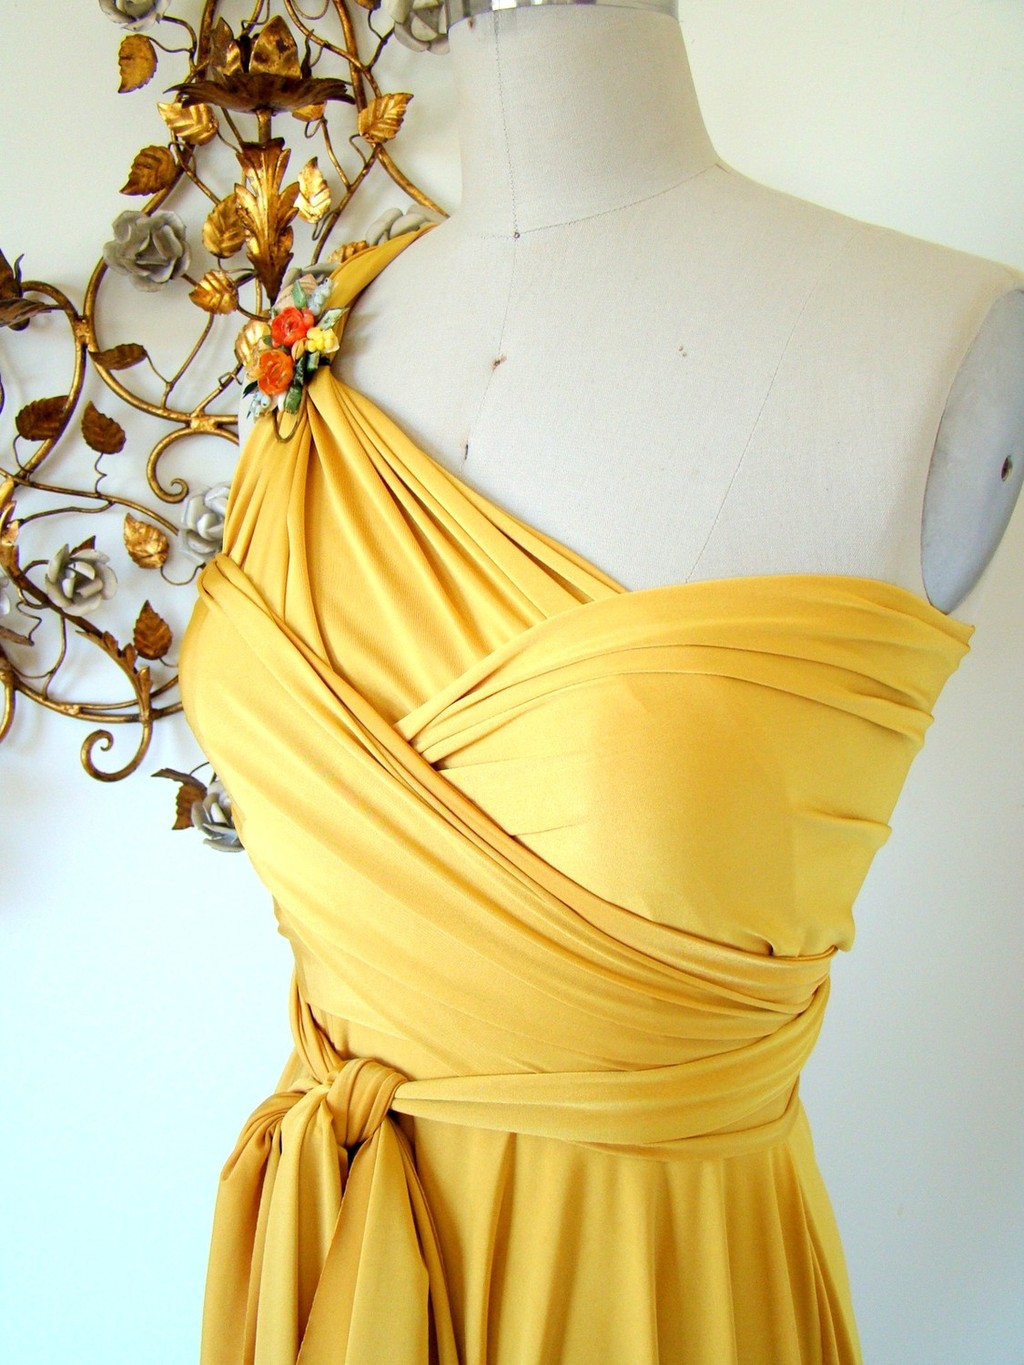 10-bridesmaids-dresses-2011-golden-sunshine-yellow-sweetheart-neckline_0.full